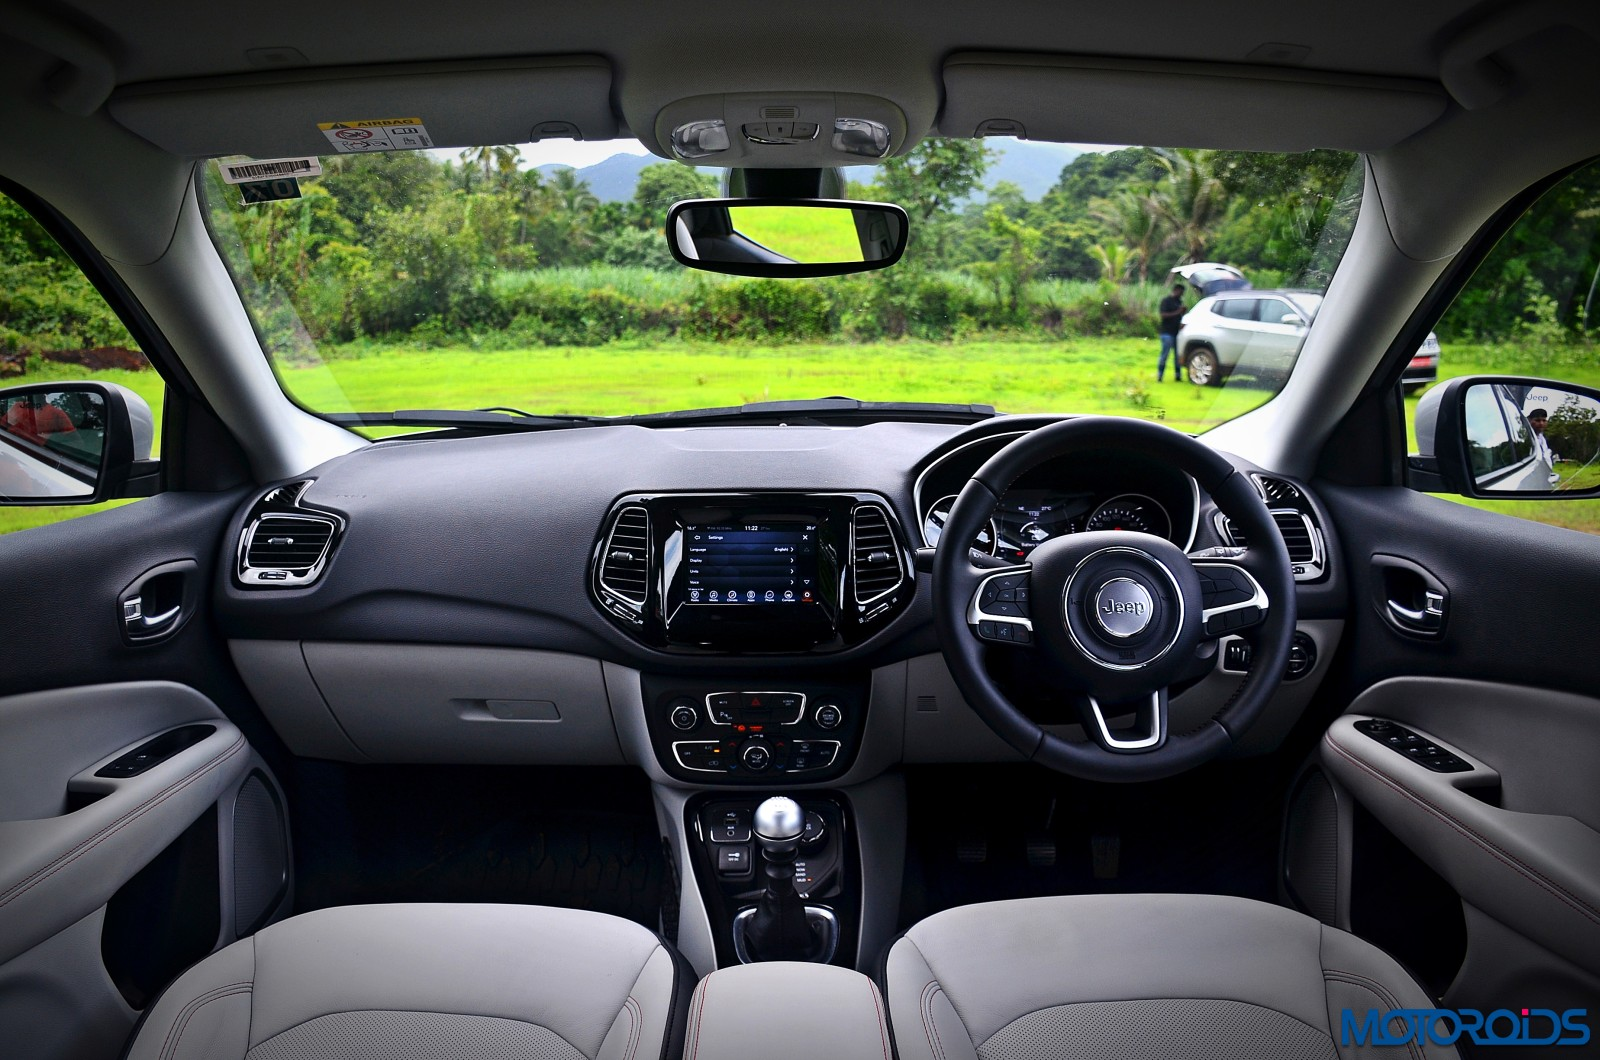 Tucson 2017 Vs Tucson 2018 >> Jeep Compass Interior 2017 India | Psoriasisguru.com